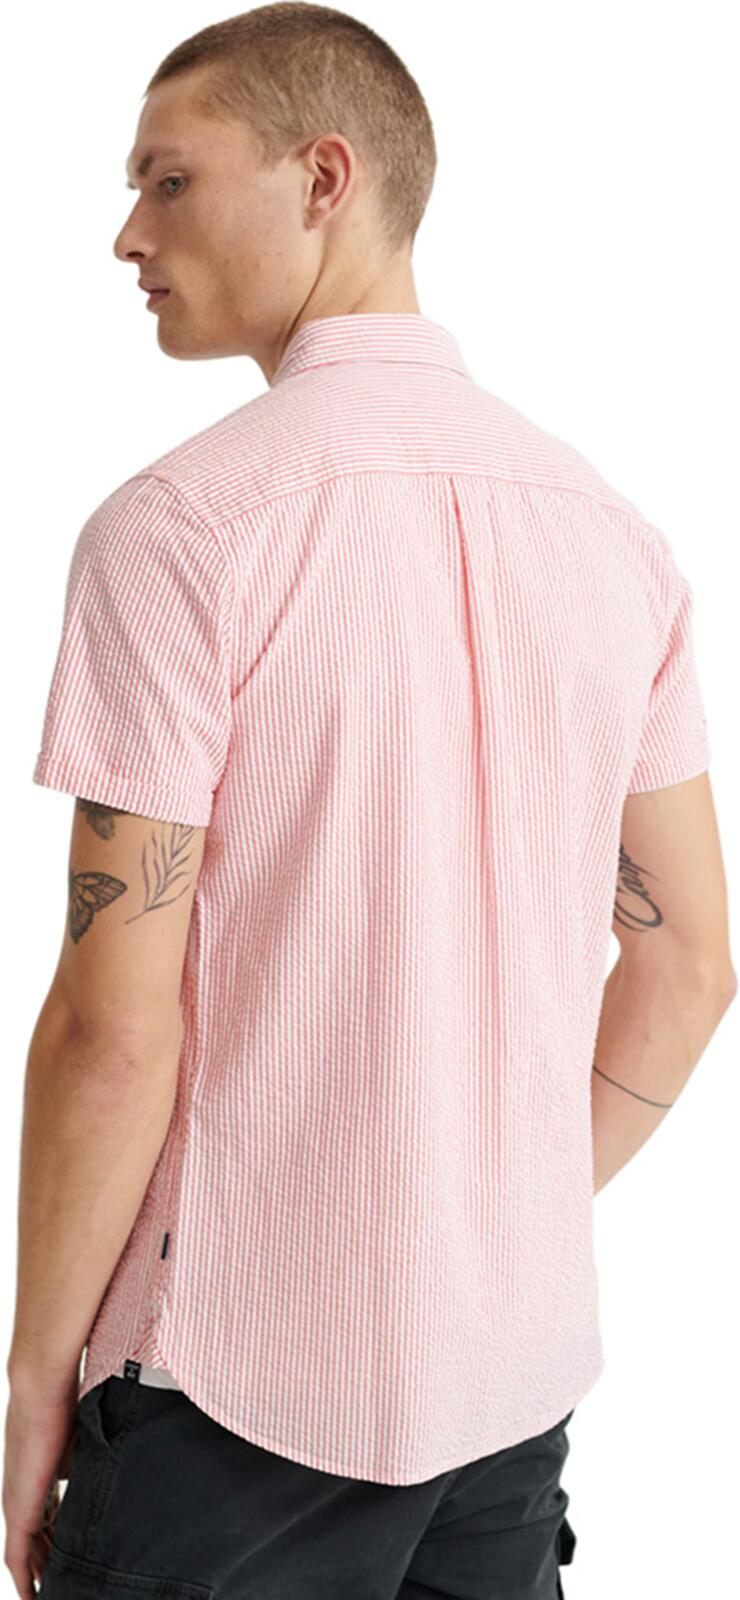 Superdry Classic Seersucker Shirt	Coral Stripe